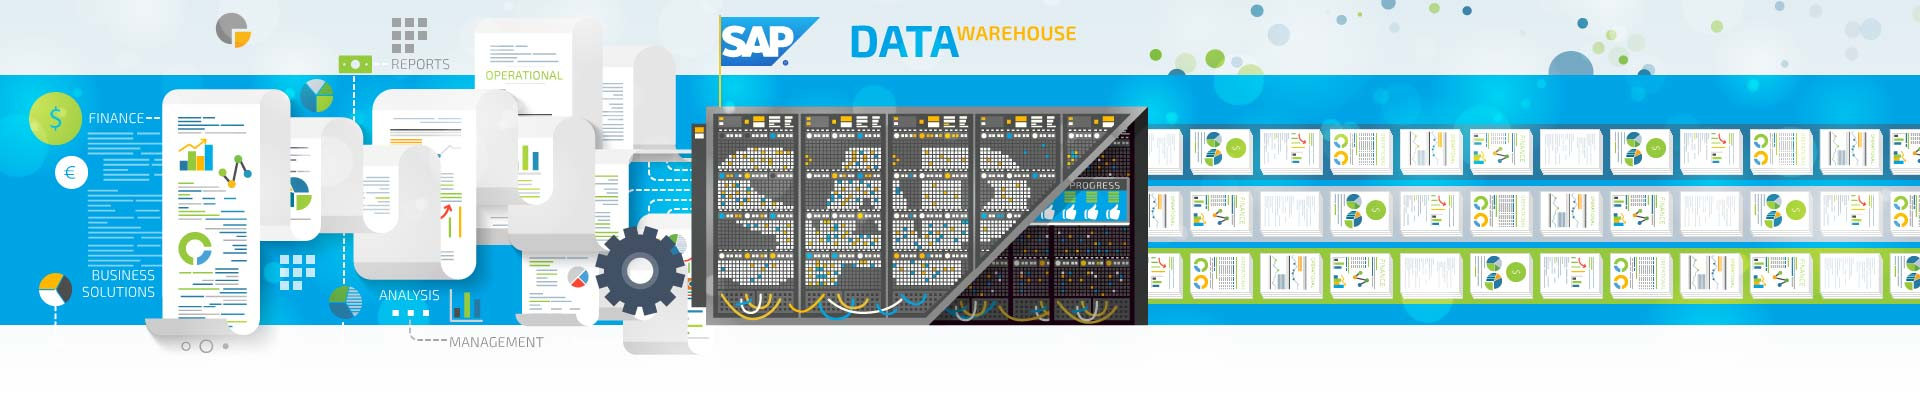 SAP-enabled Data Warehouse System